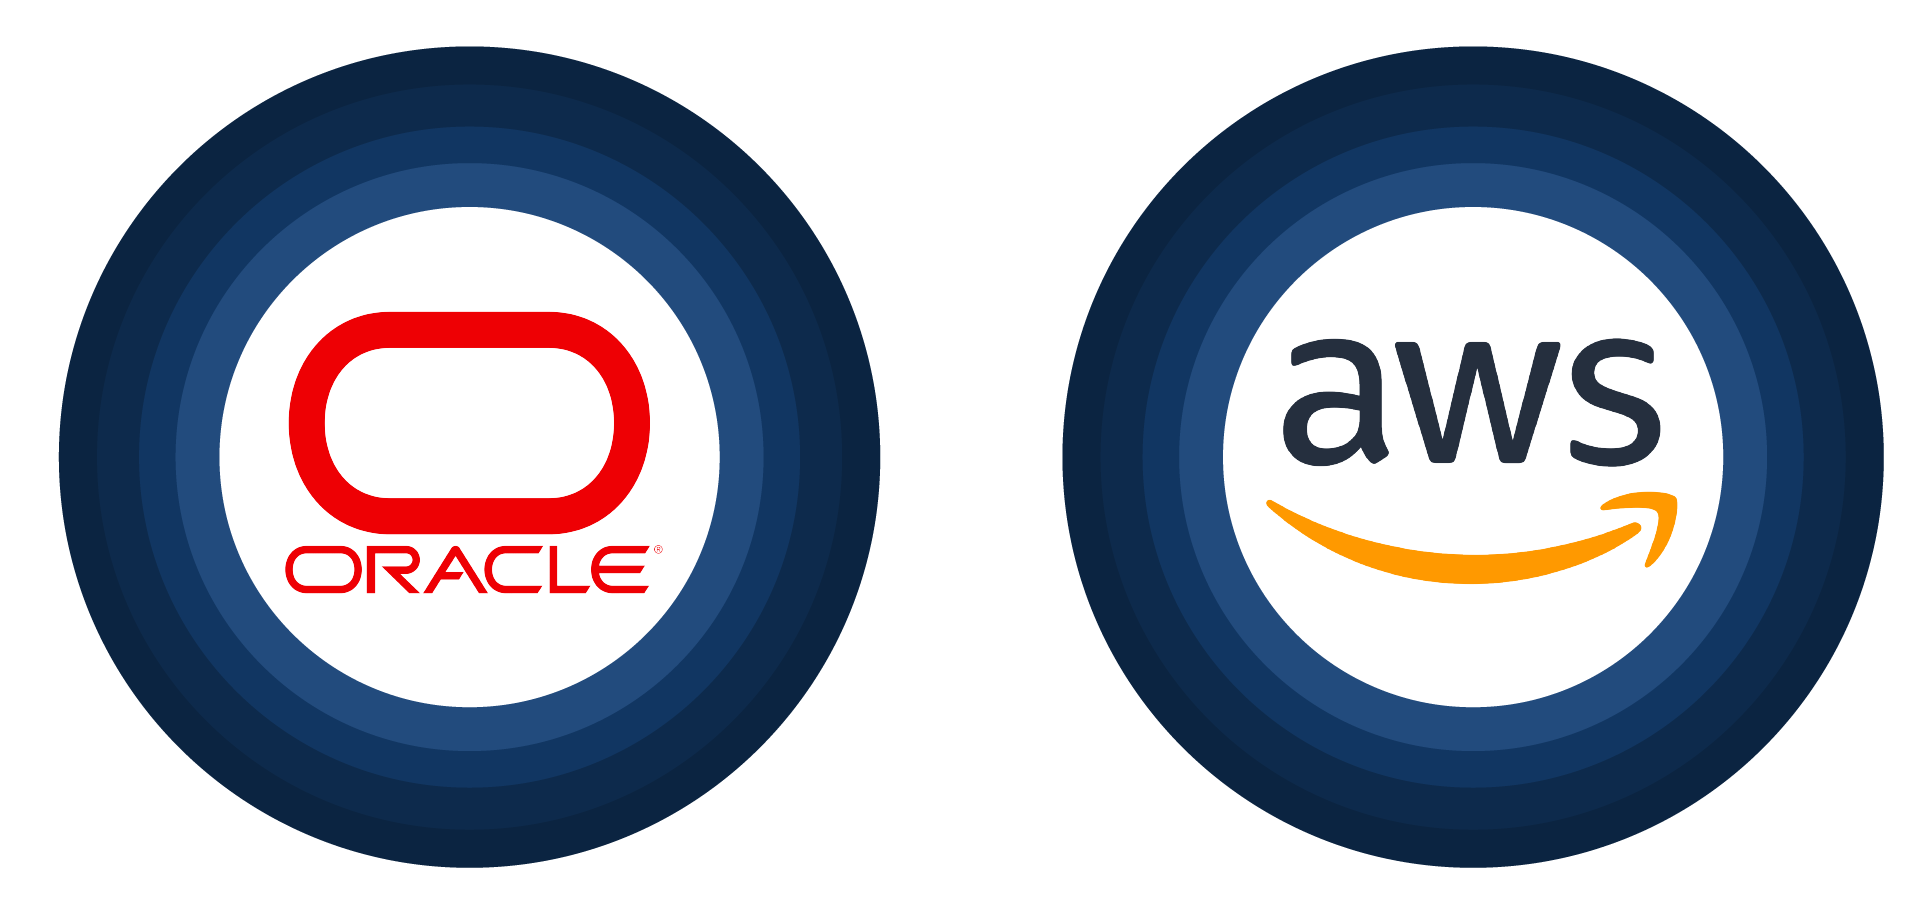 Product_Oracle-AWS_V1-01